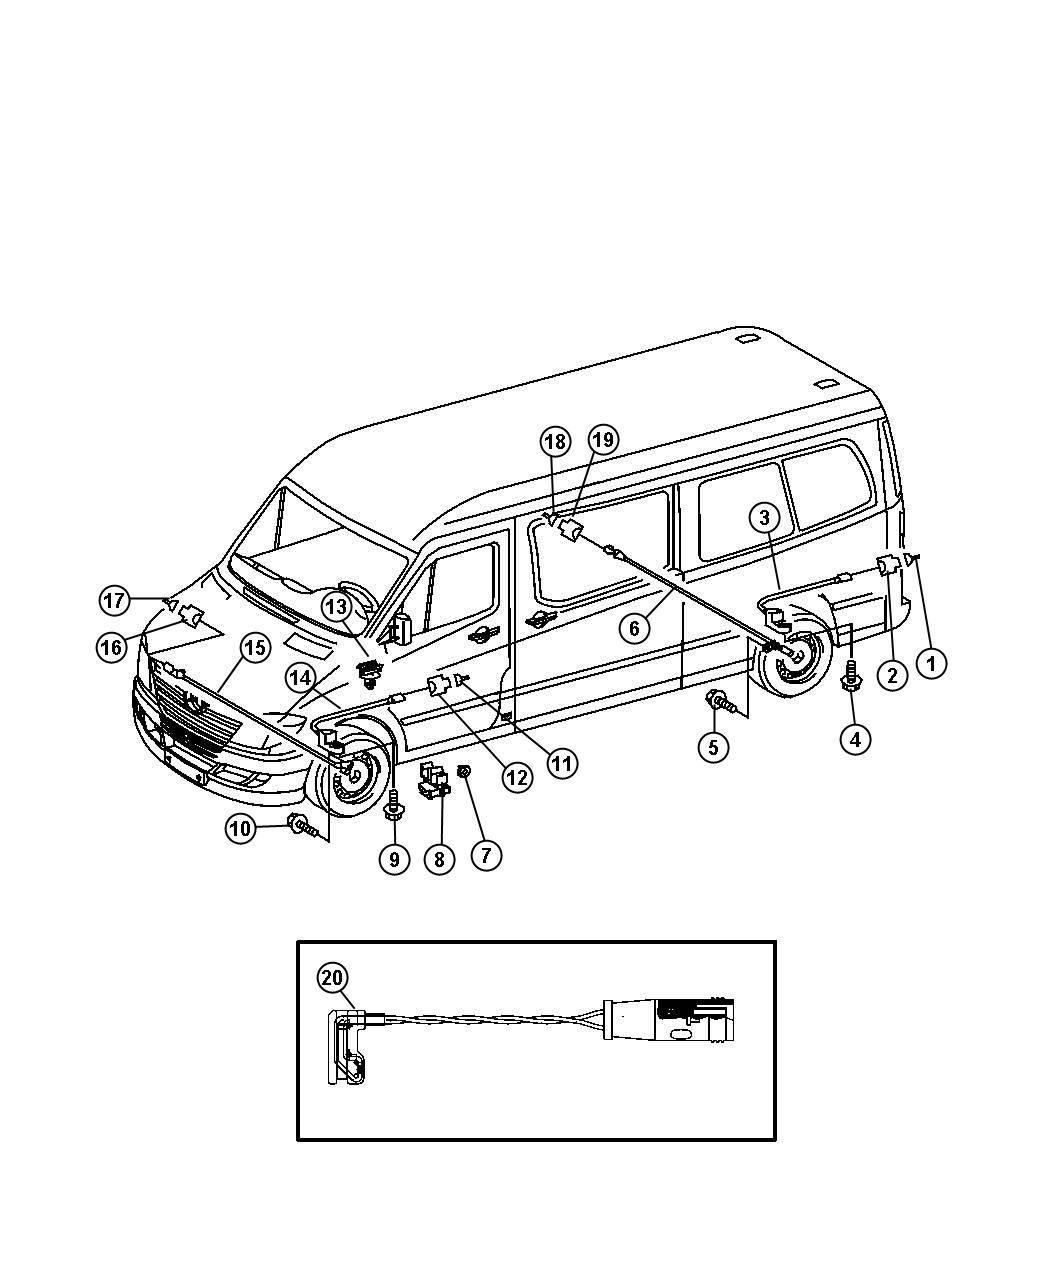 2007 ford escape diagram  ford  auto wiring diagram